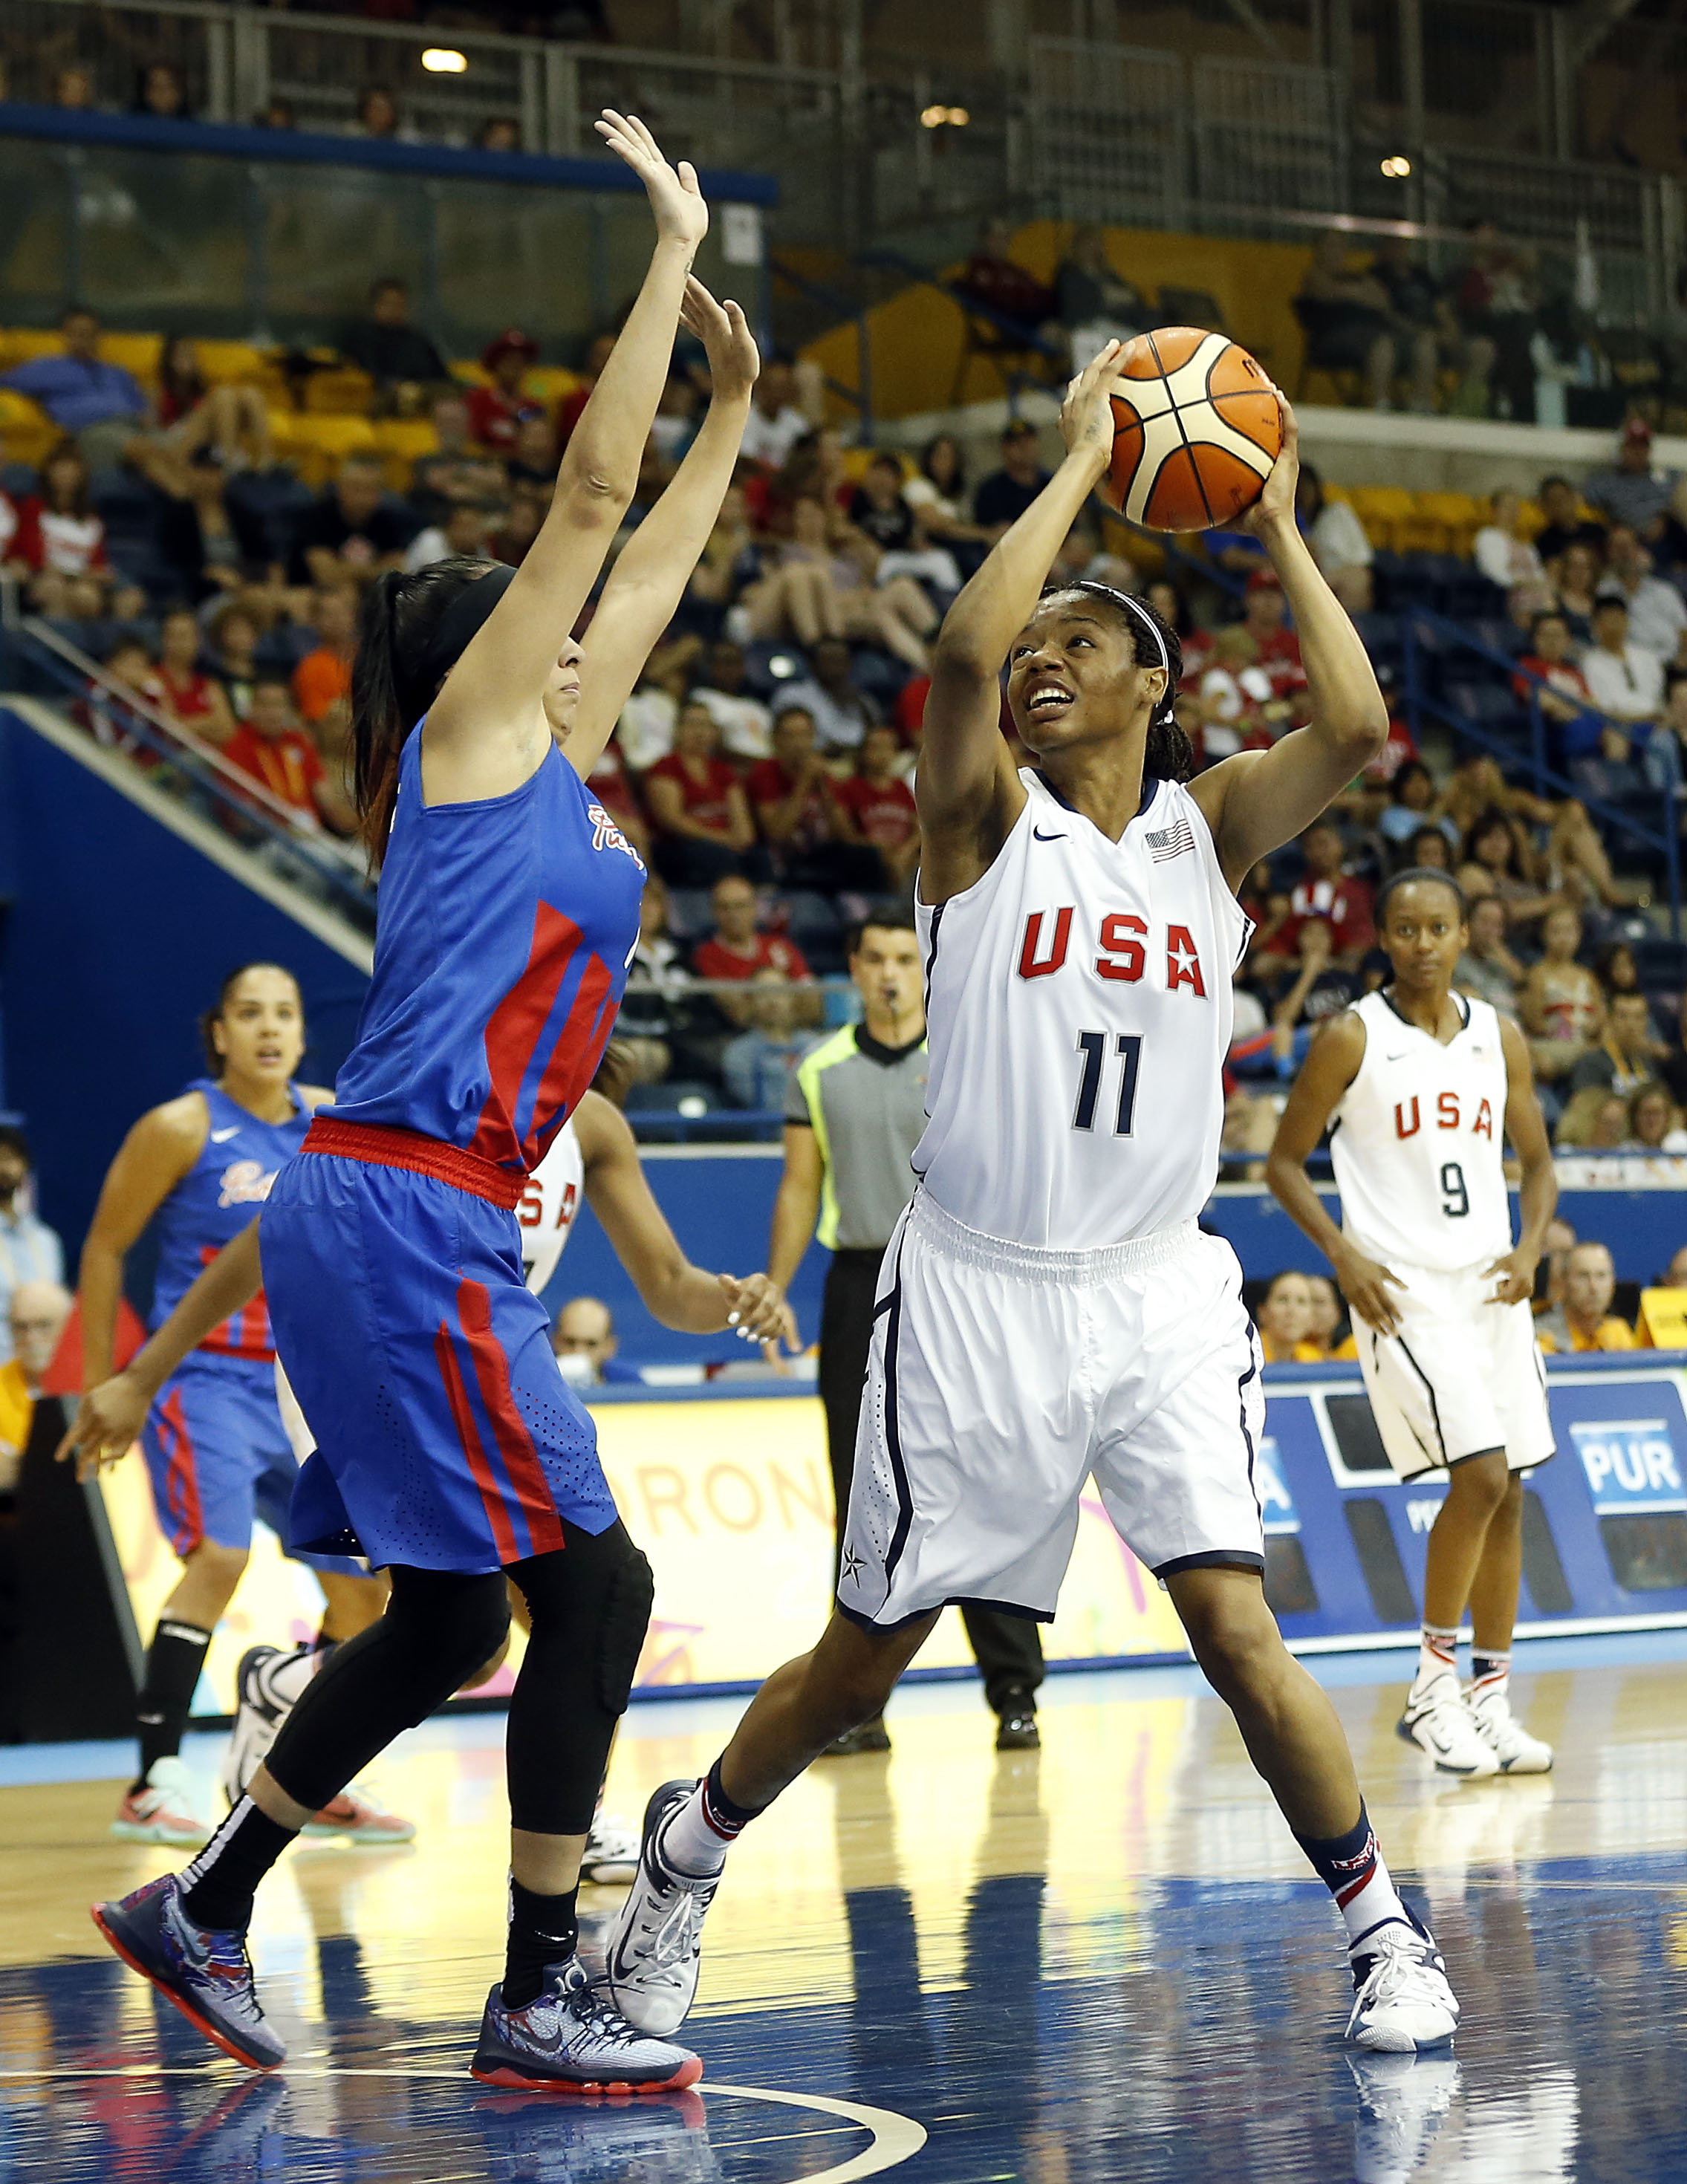 Courtney Williams at the Pan American Games